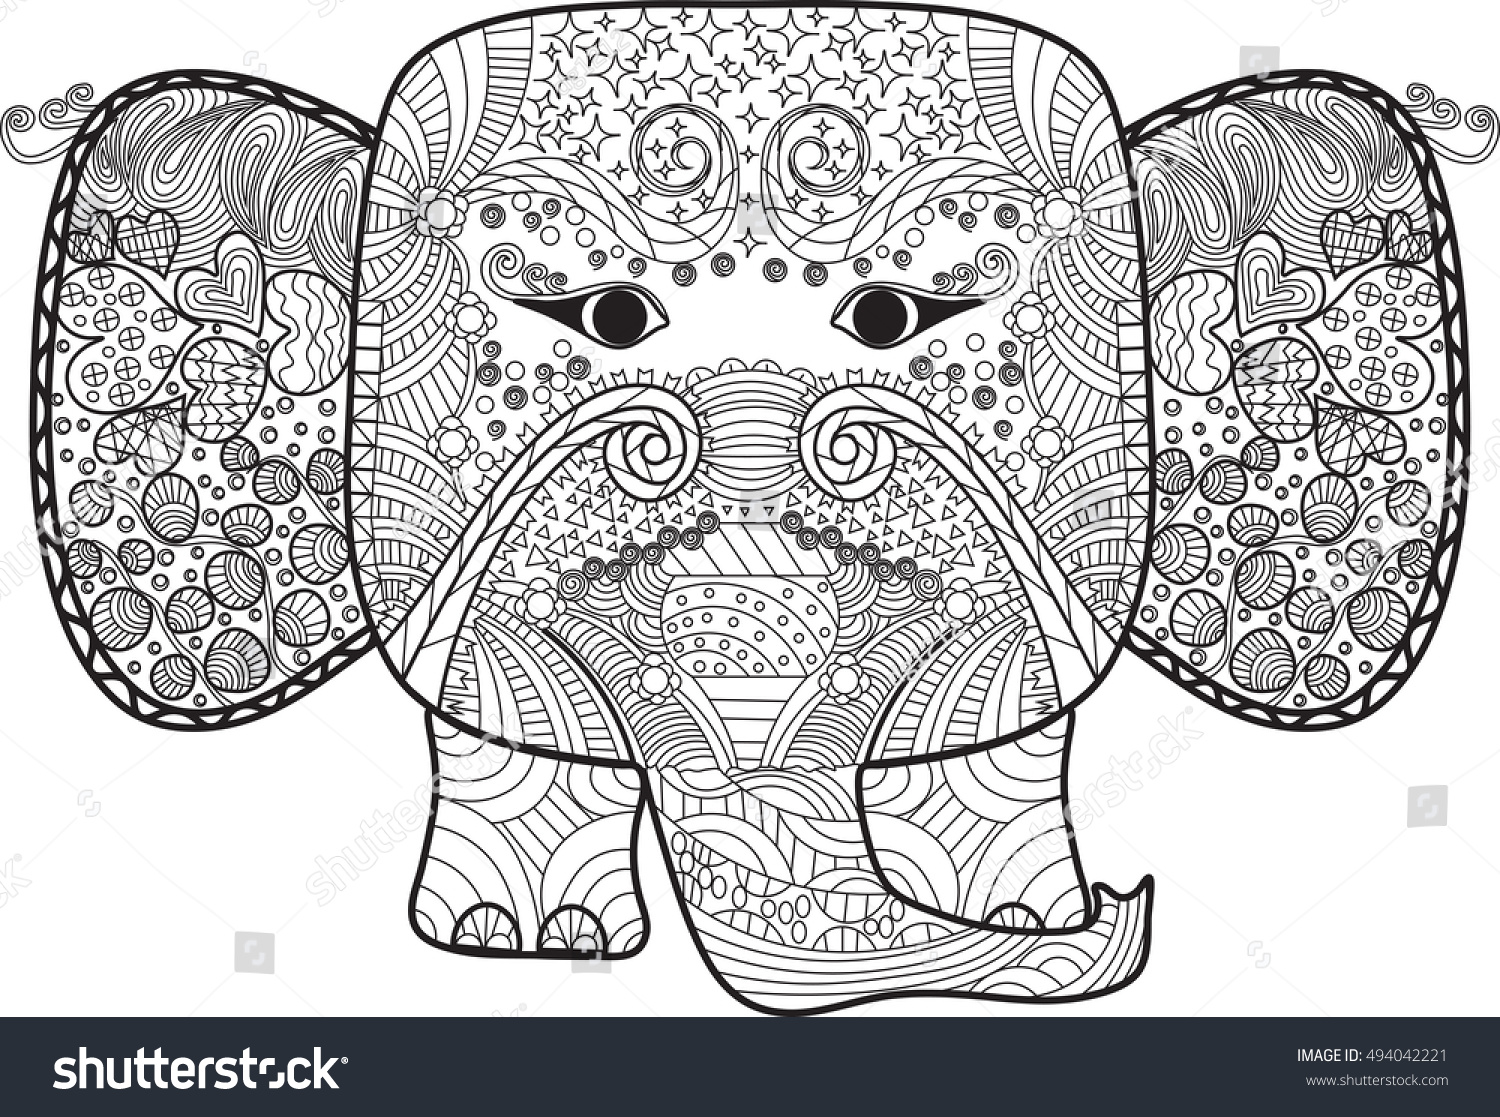 abstract cute elephant doodle hand drawn stock vector 494042221